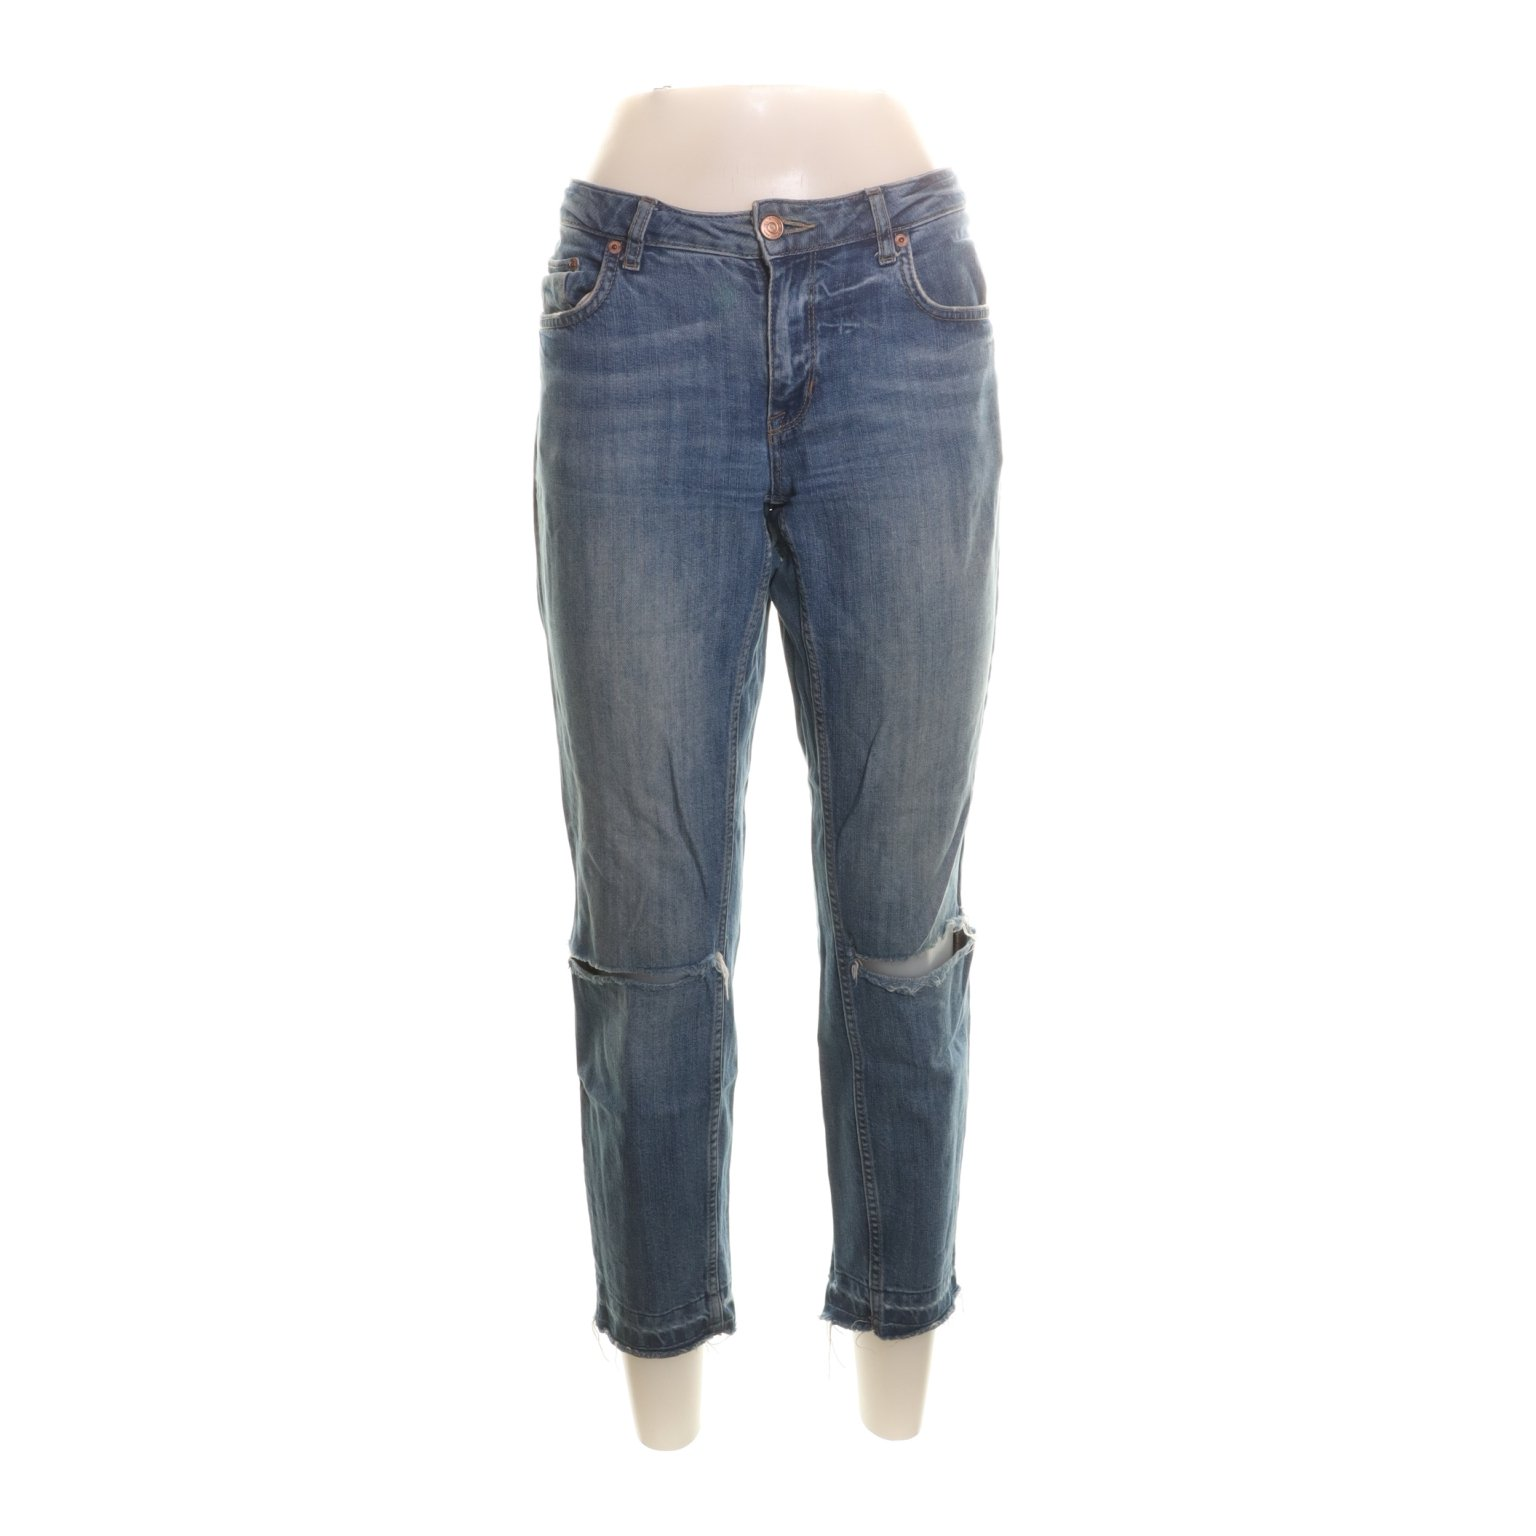 Perfect Jeans Gina Tricot, Jeans, Strl: 30, Filippa Cropped Jeans, Blå